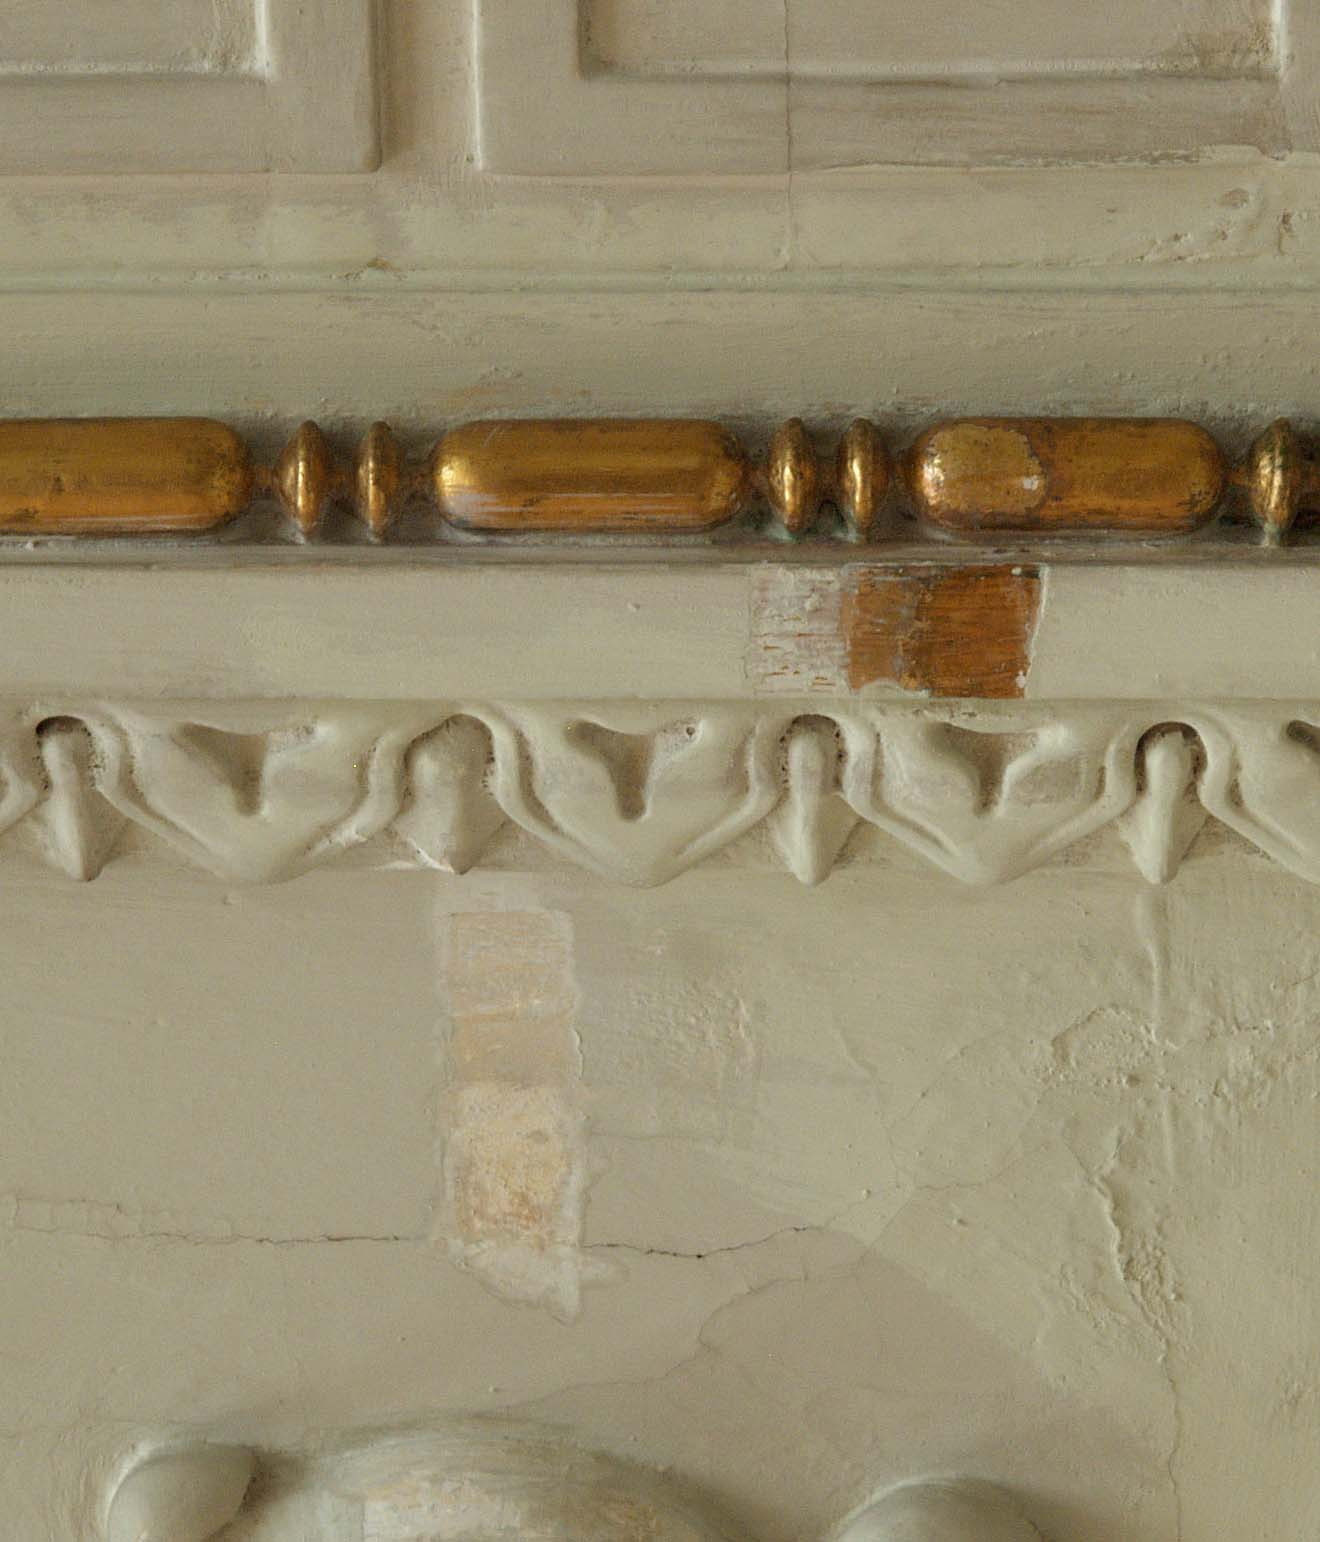 These Are Small Samples Of Exposed Paint From The Ceiling In Great Hall Palace